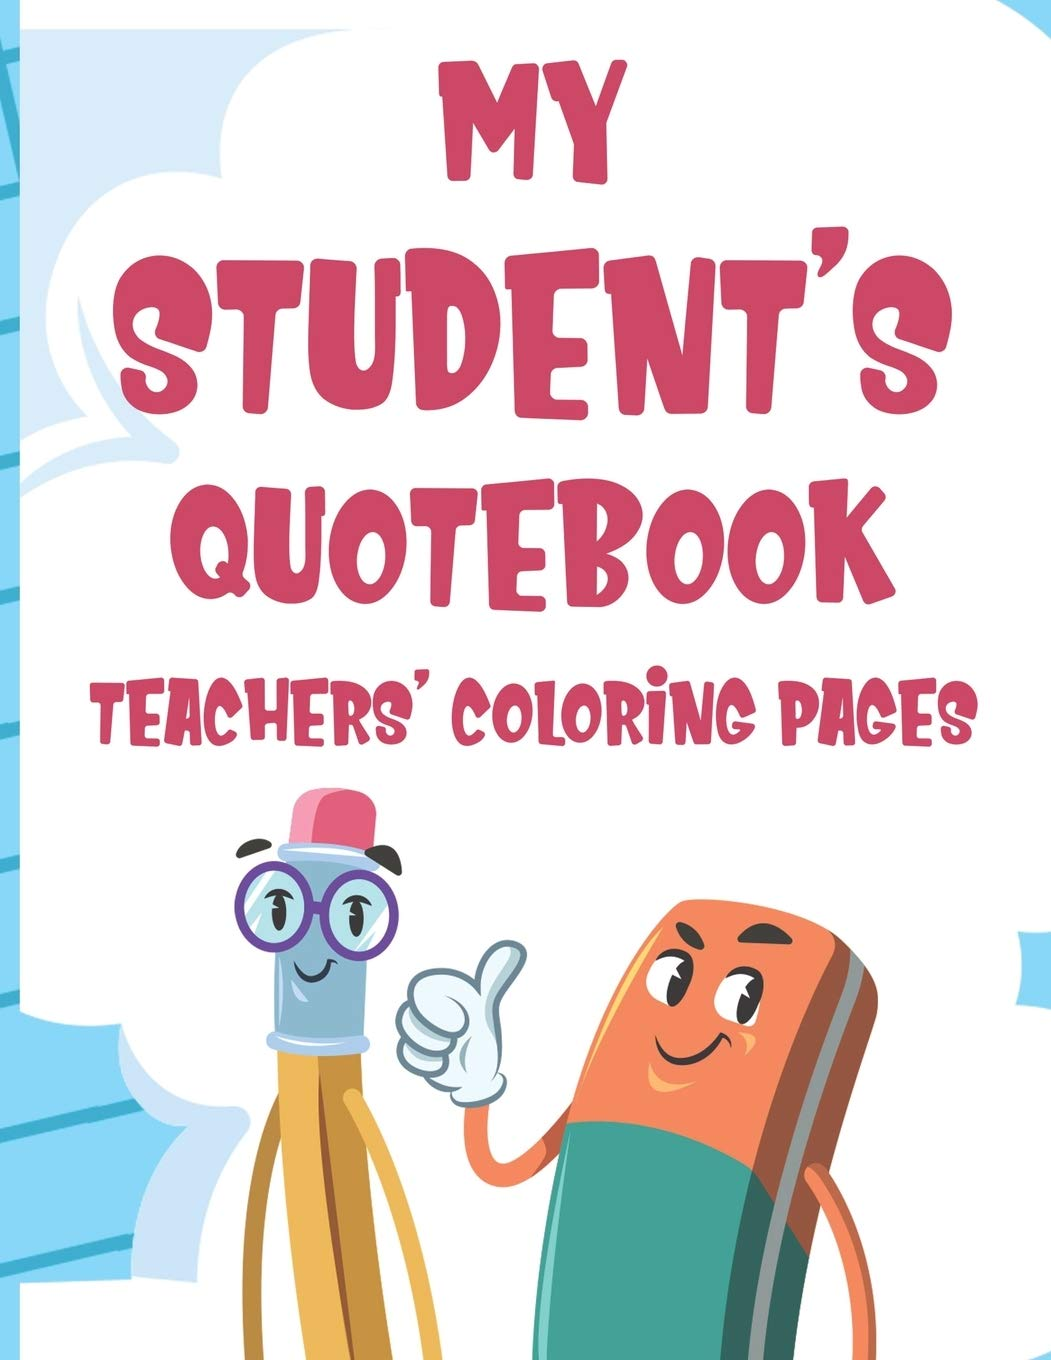 Amazon Com My Student S Quotebook Teachers Coloring Pages Stress Relief Coloring Sheets With Funny Student Quotes Teacher Appreciation Coloring Book 9798681805564 Garcia Laurie Books